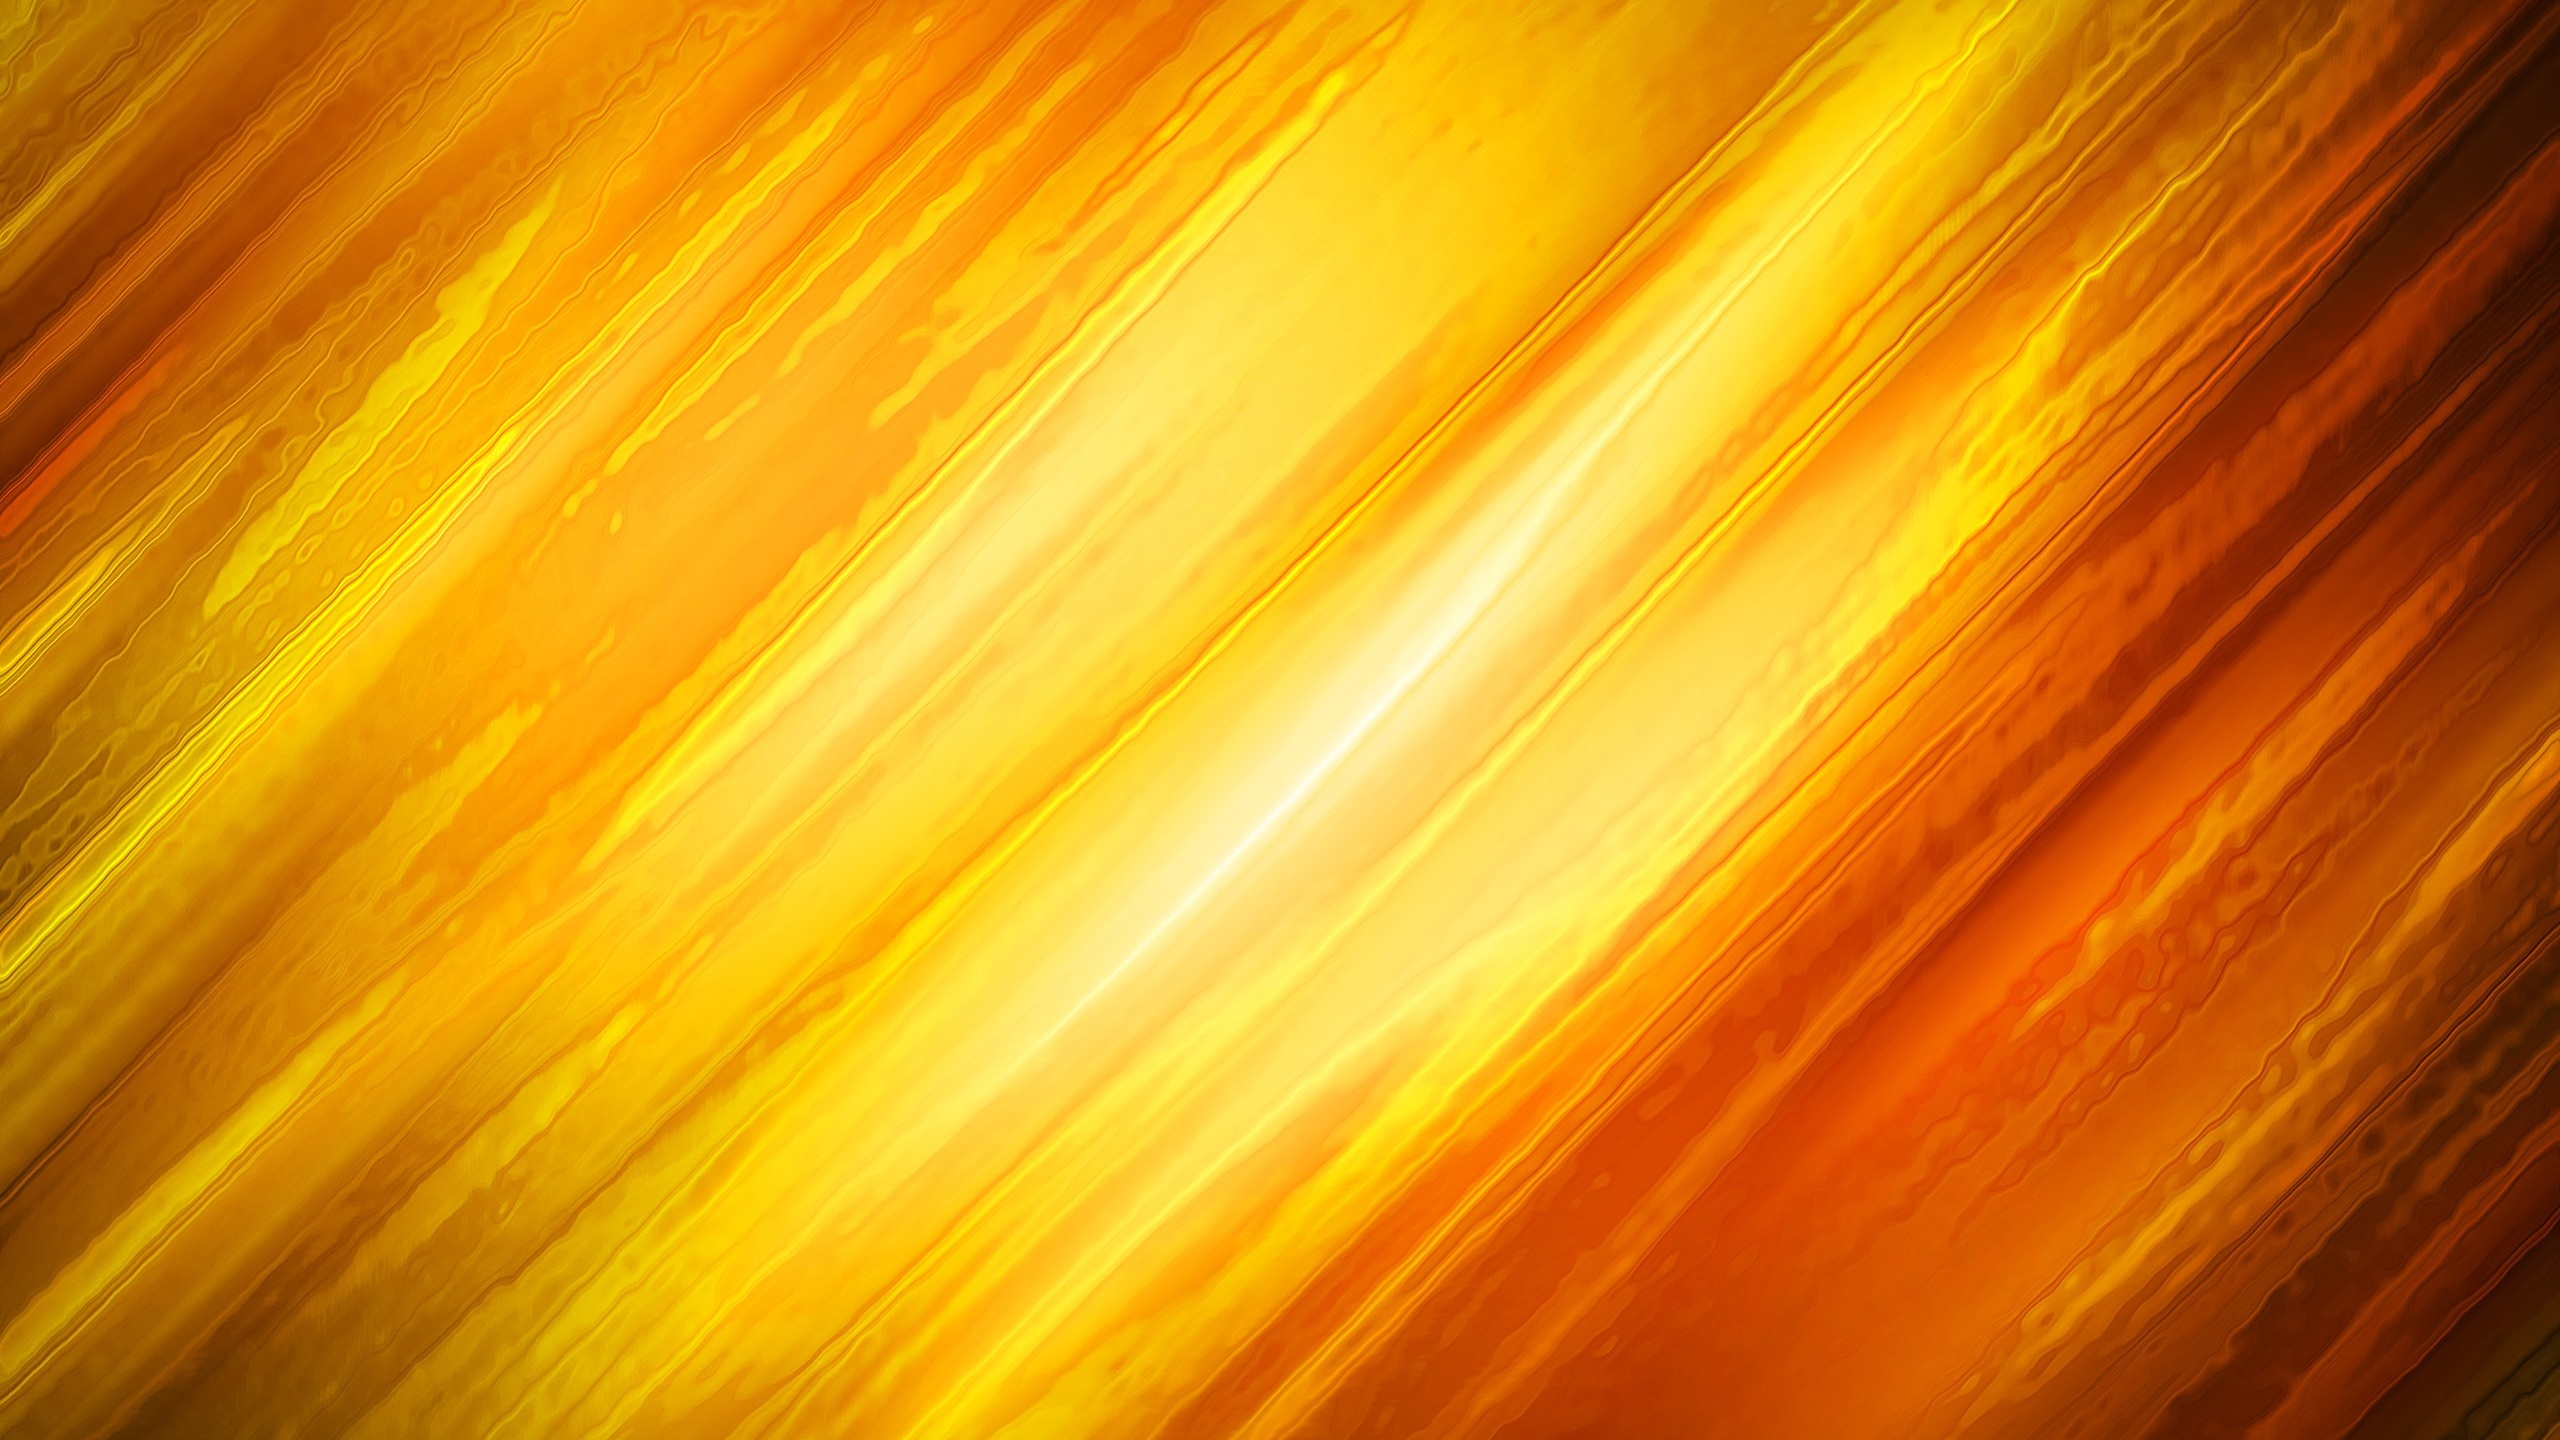 Background image 2560 x 1440 - 2560x1440 Abstract Yellow And Orange Background Desktop Pc And Mac